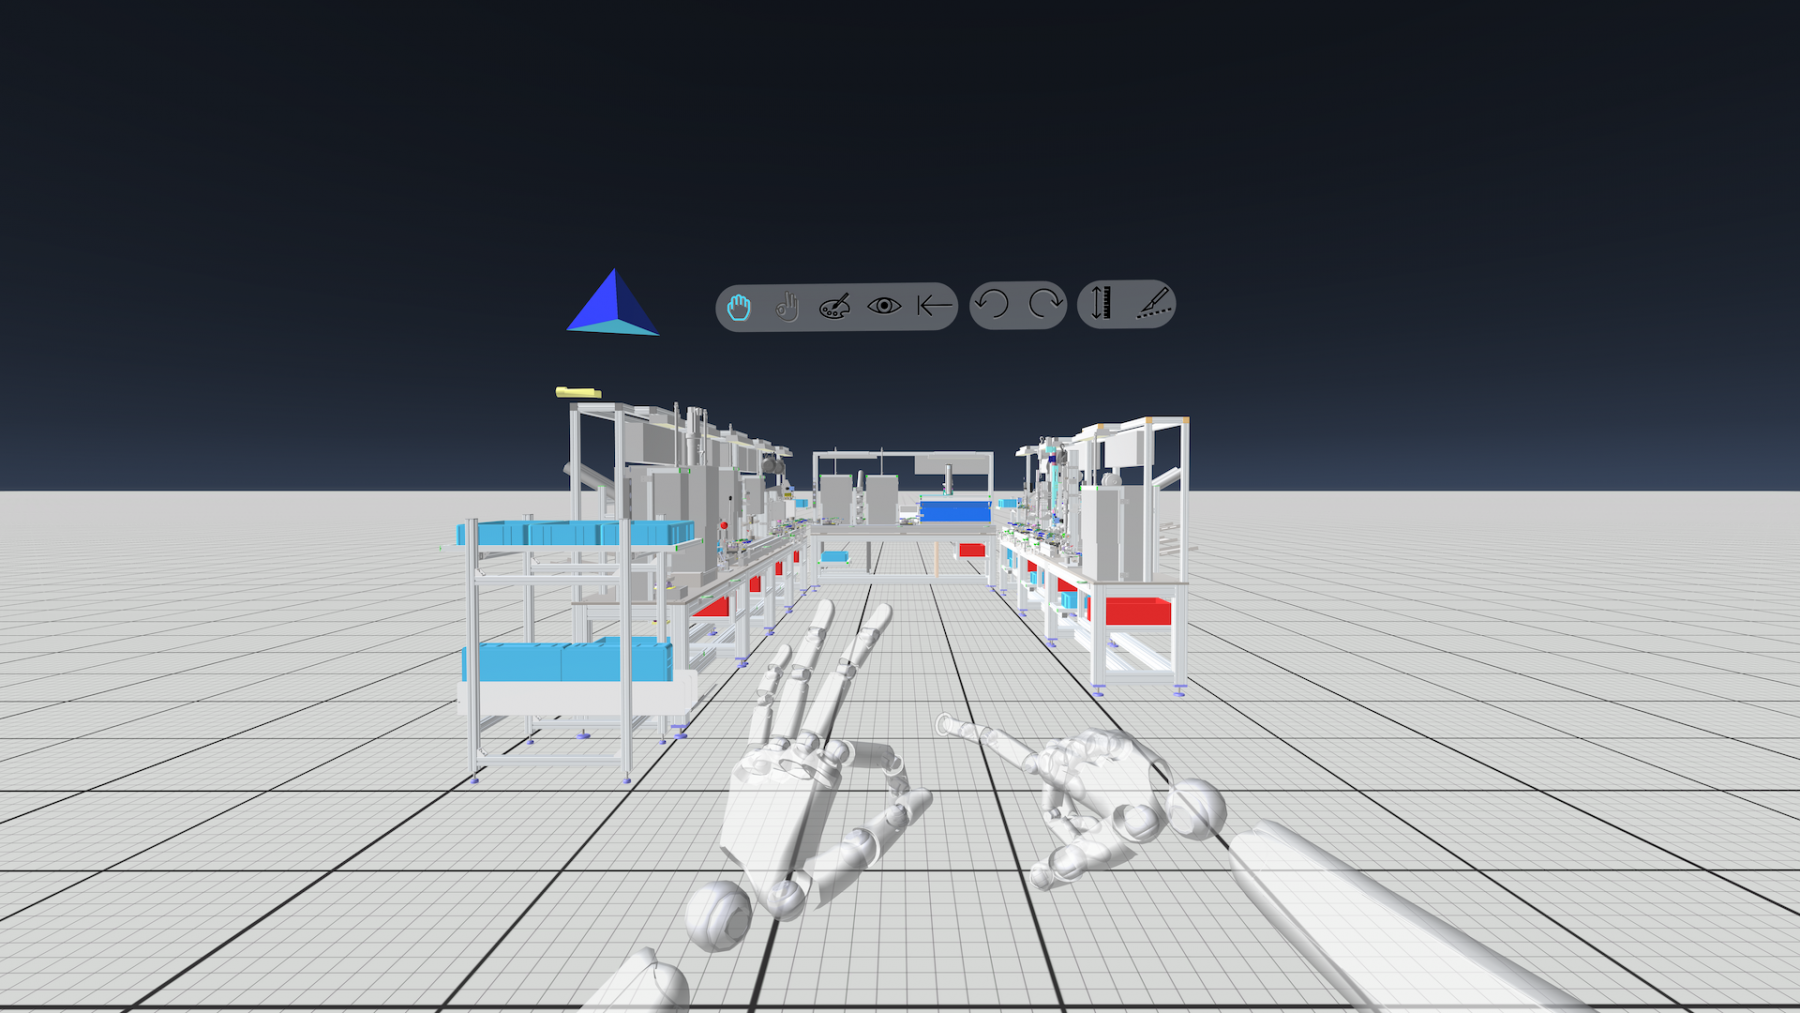 3D CAD Modell in VR